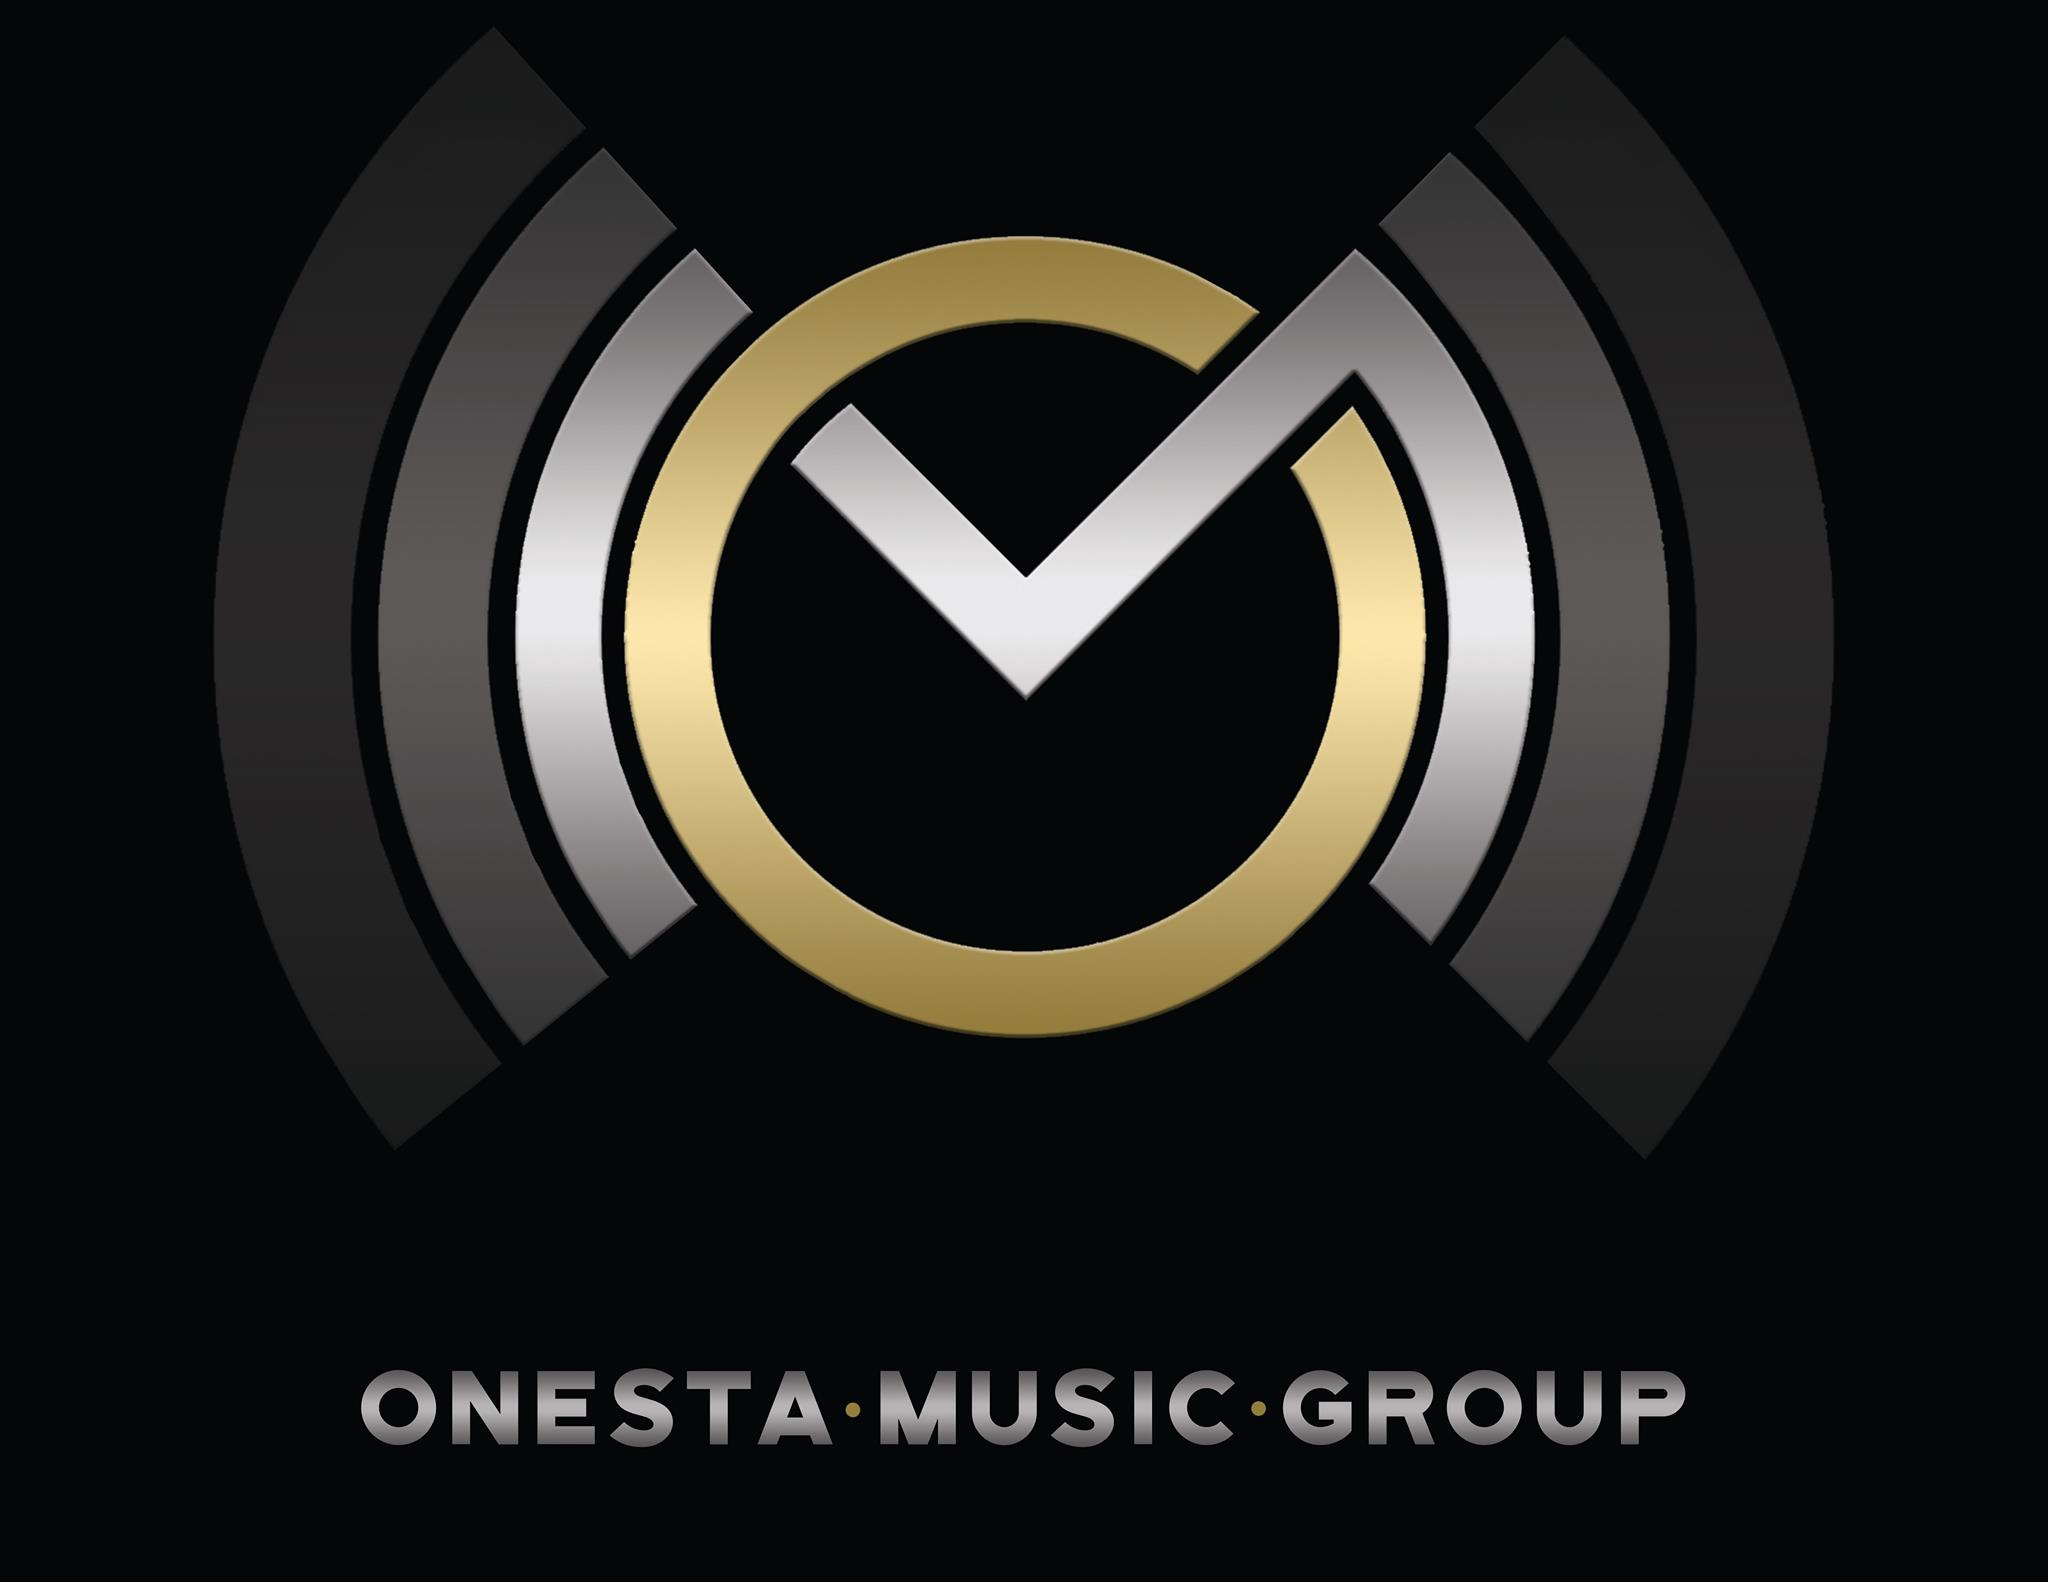 ONESTA MUSIC GROUP